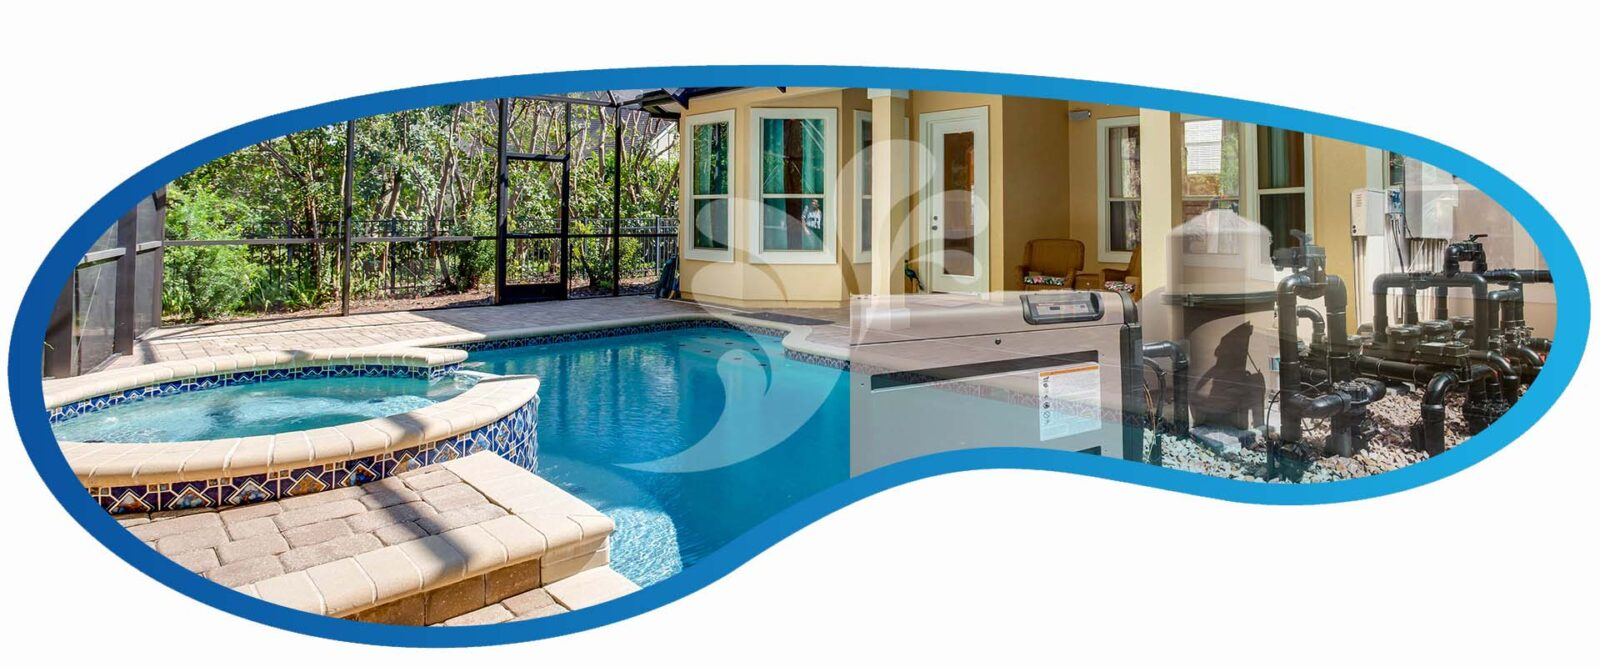 Pool Repair Company - Fresh Finish Pools